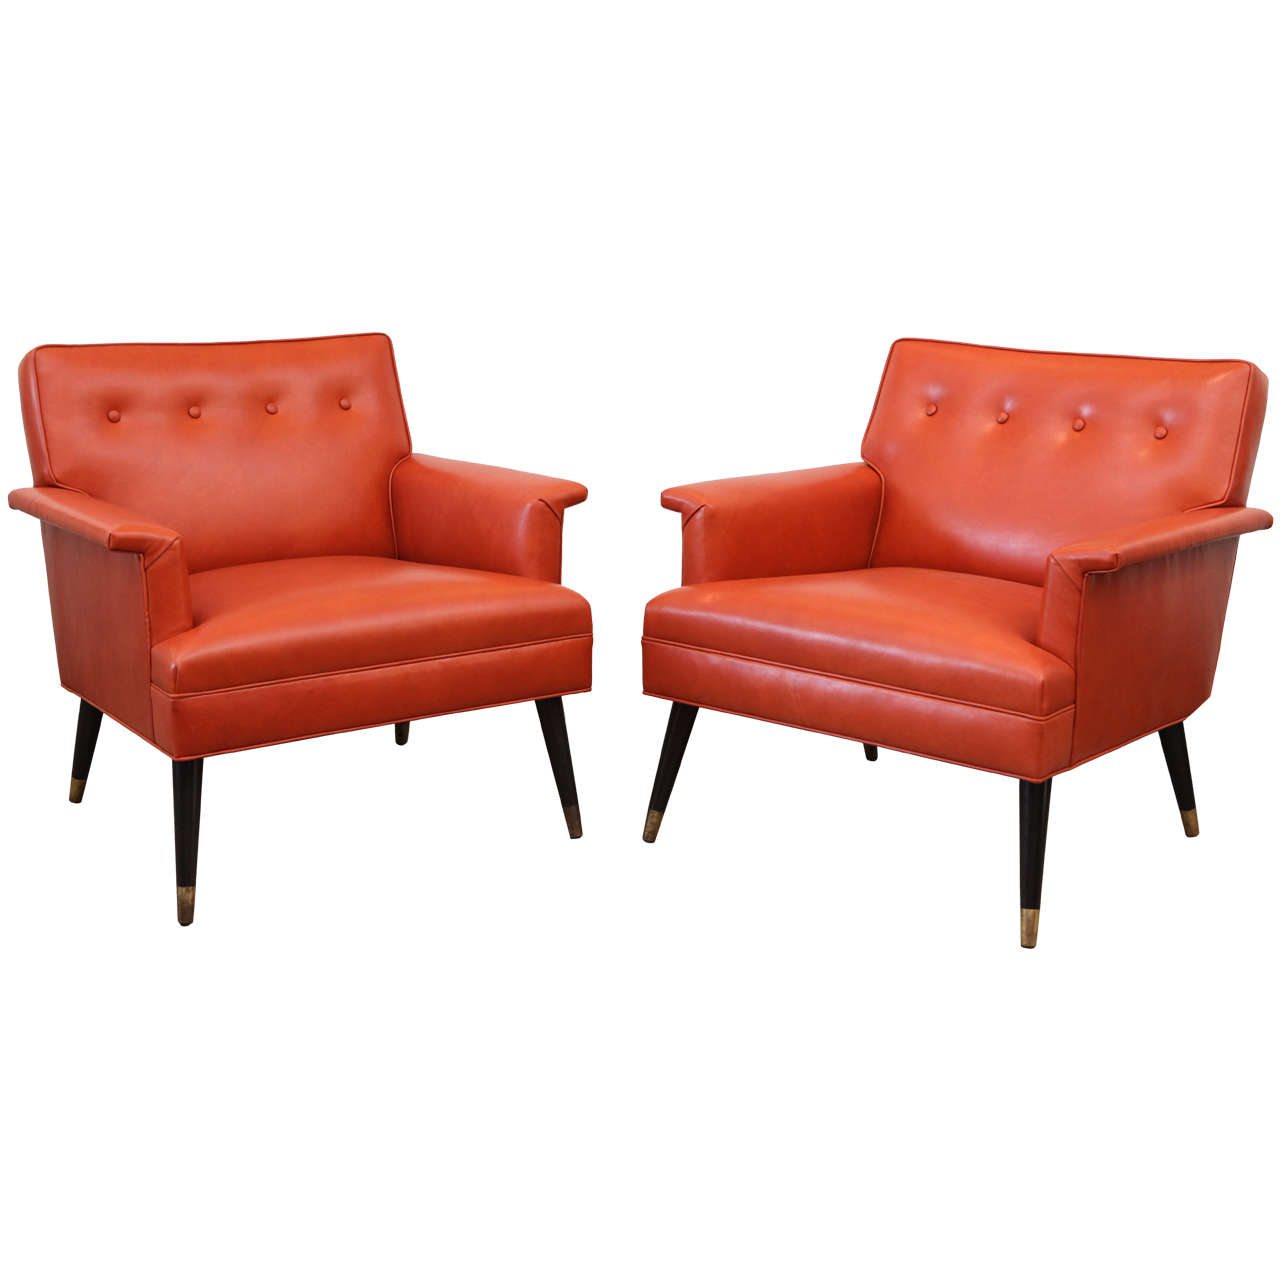 Orange Leather Chair Pair Of Orange Leather Mid Century Armchairs At 1stdibs